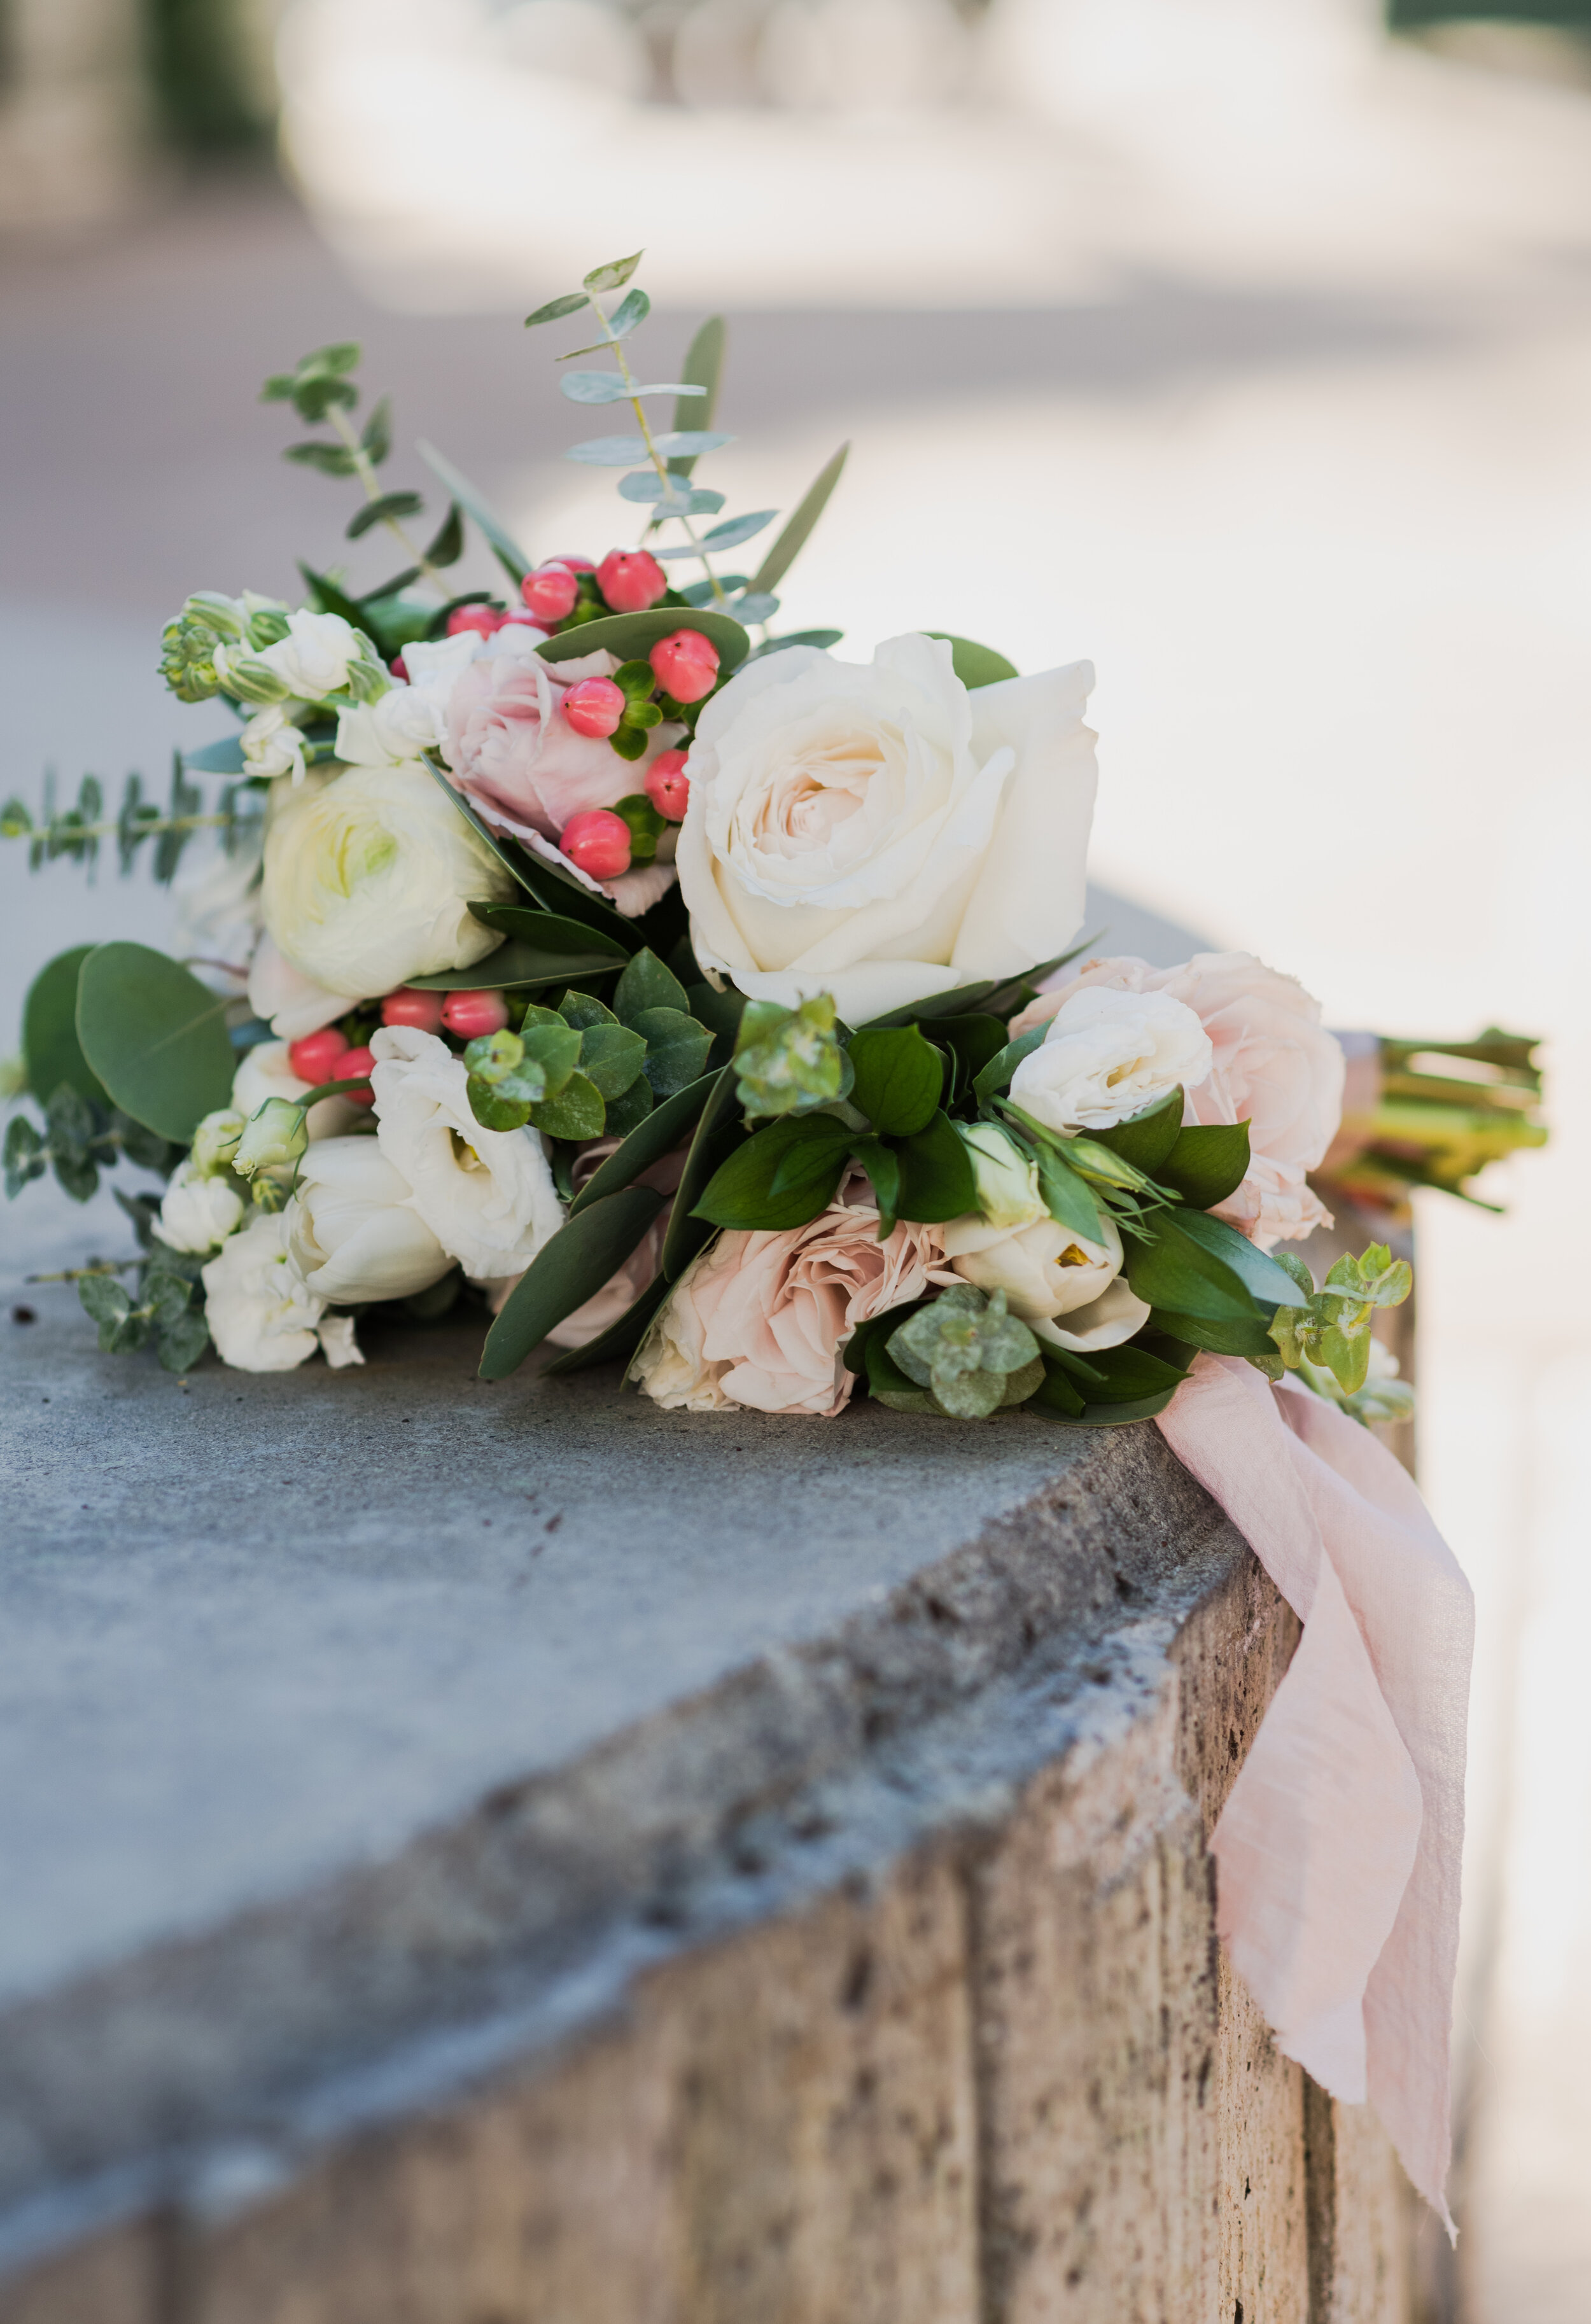 Payson Utah Temple Payson Utah wedding flower wedding bouquet wedding flower inspo pink and white flowers flowers with greenery flowers with ribbon flower pictures flowers laying down flower styling ideas flower photos wedding flower photo ideas utah photographer beautiful flowers #utahweddingphotographer #weddingday #utahvalleyweddingphotographer #weddingphotography #flowers #weddingbouquet #weddingflowers #pinkflowers #whiteflowers #prettyflowers